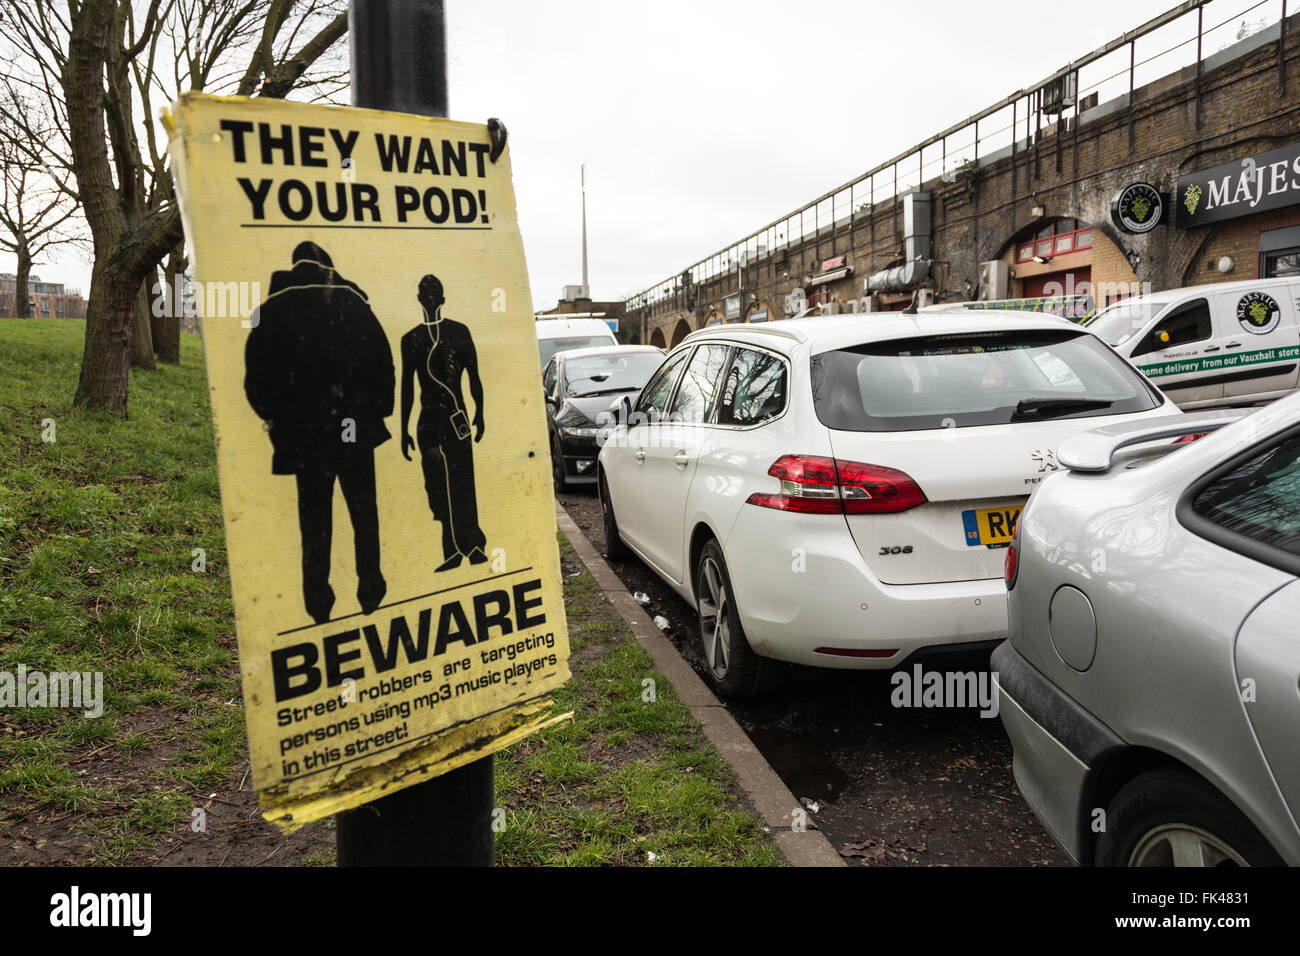 Beware - They Want Your Pod car theft warning sign on London street, UK. - Stock Image